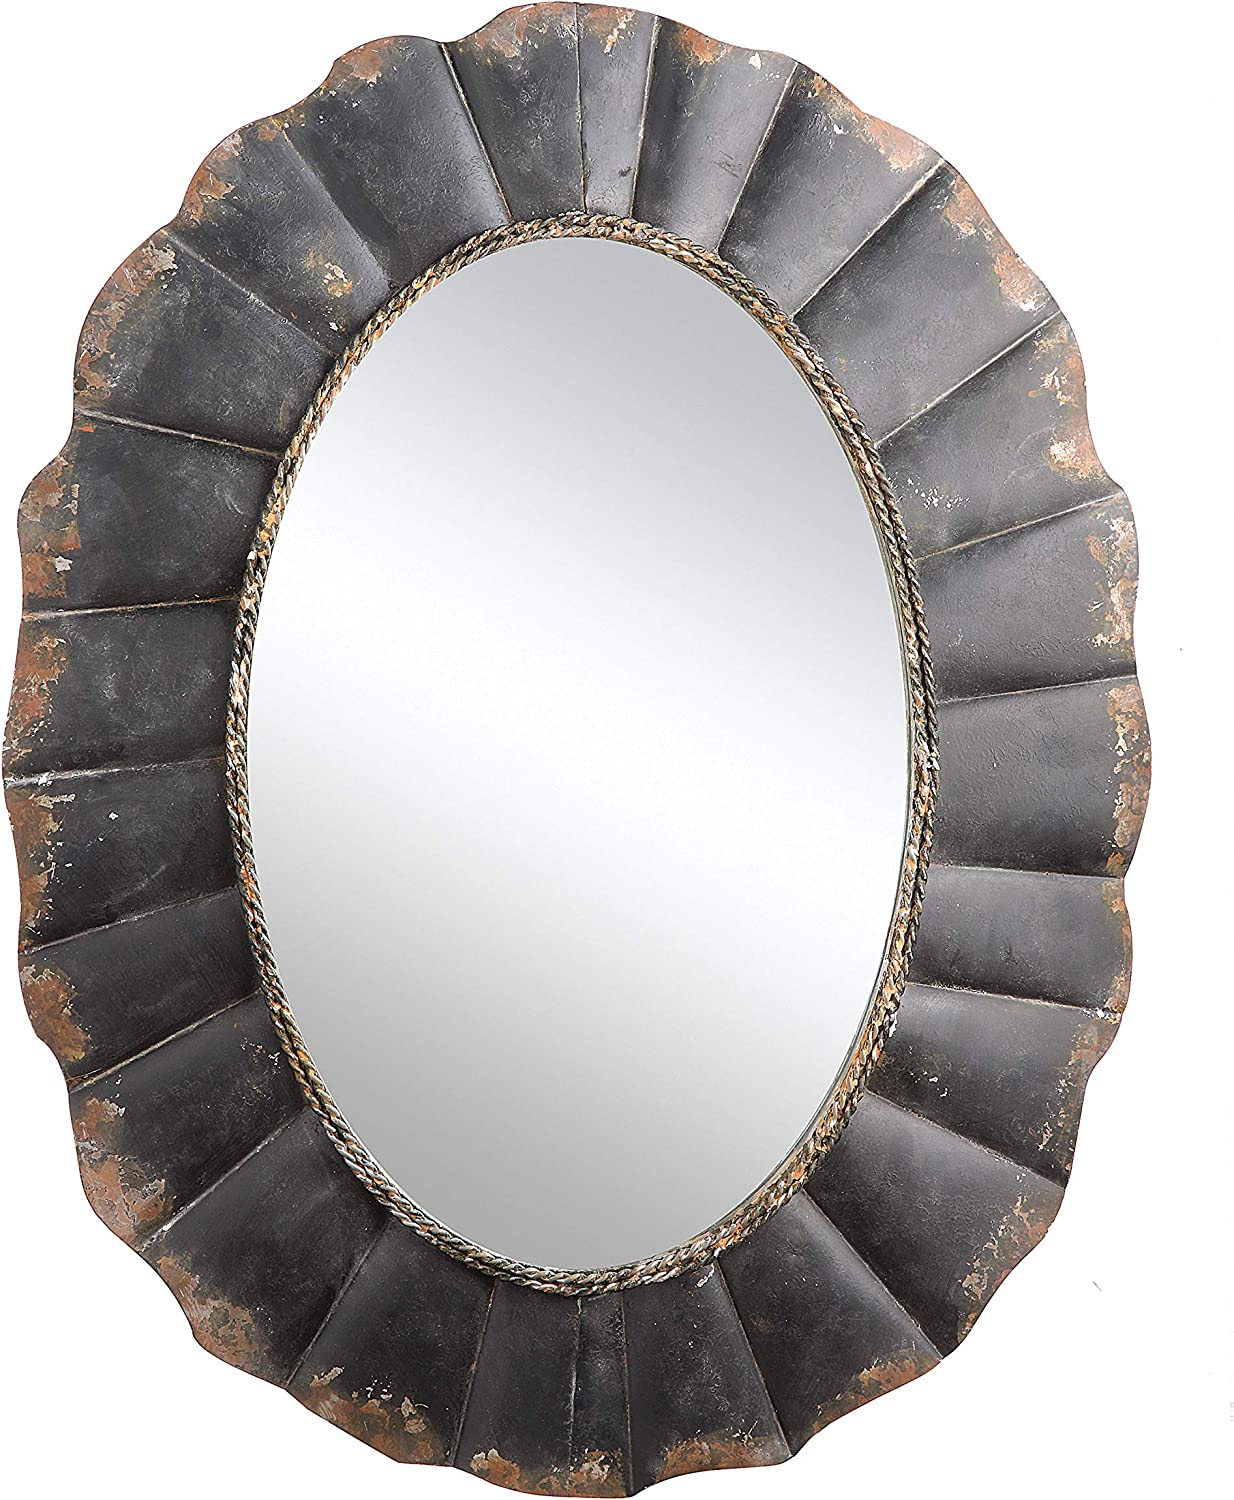 Creative Co-op Oval Mirror with Distressed Black Scalloped Metal Frame